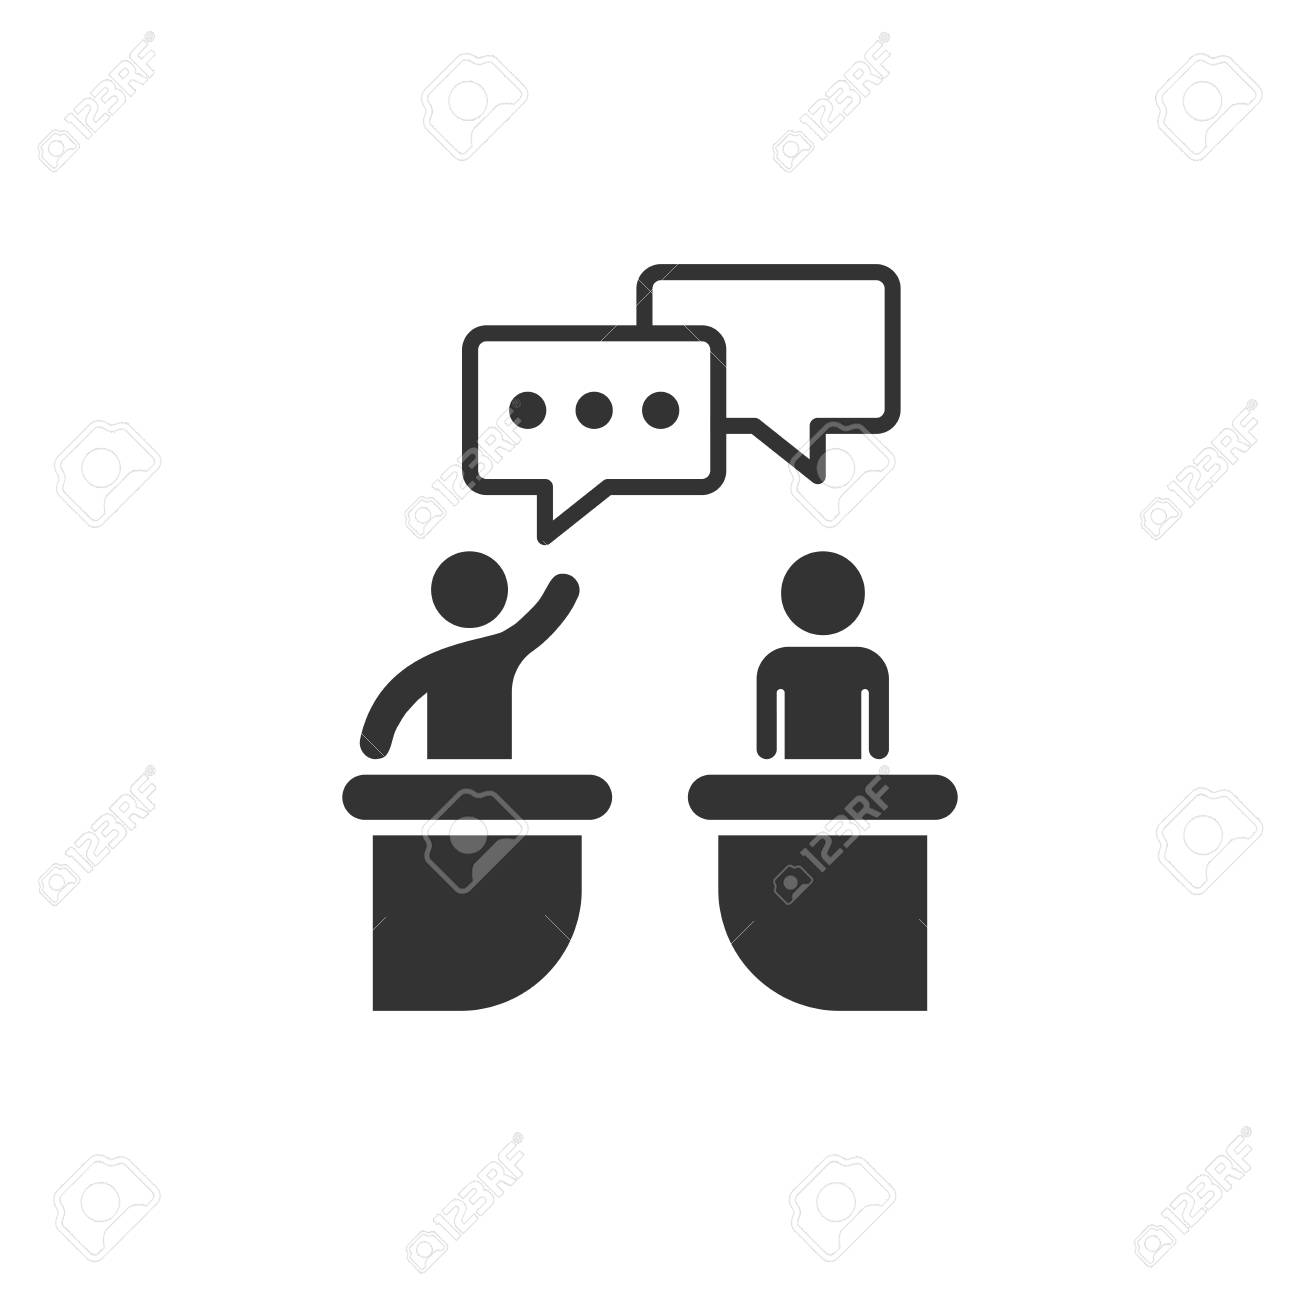 Politic debate icon in flat style. Presidential debates vector illustration on white isolated background. Businessman discussion business concept. - 110122317